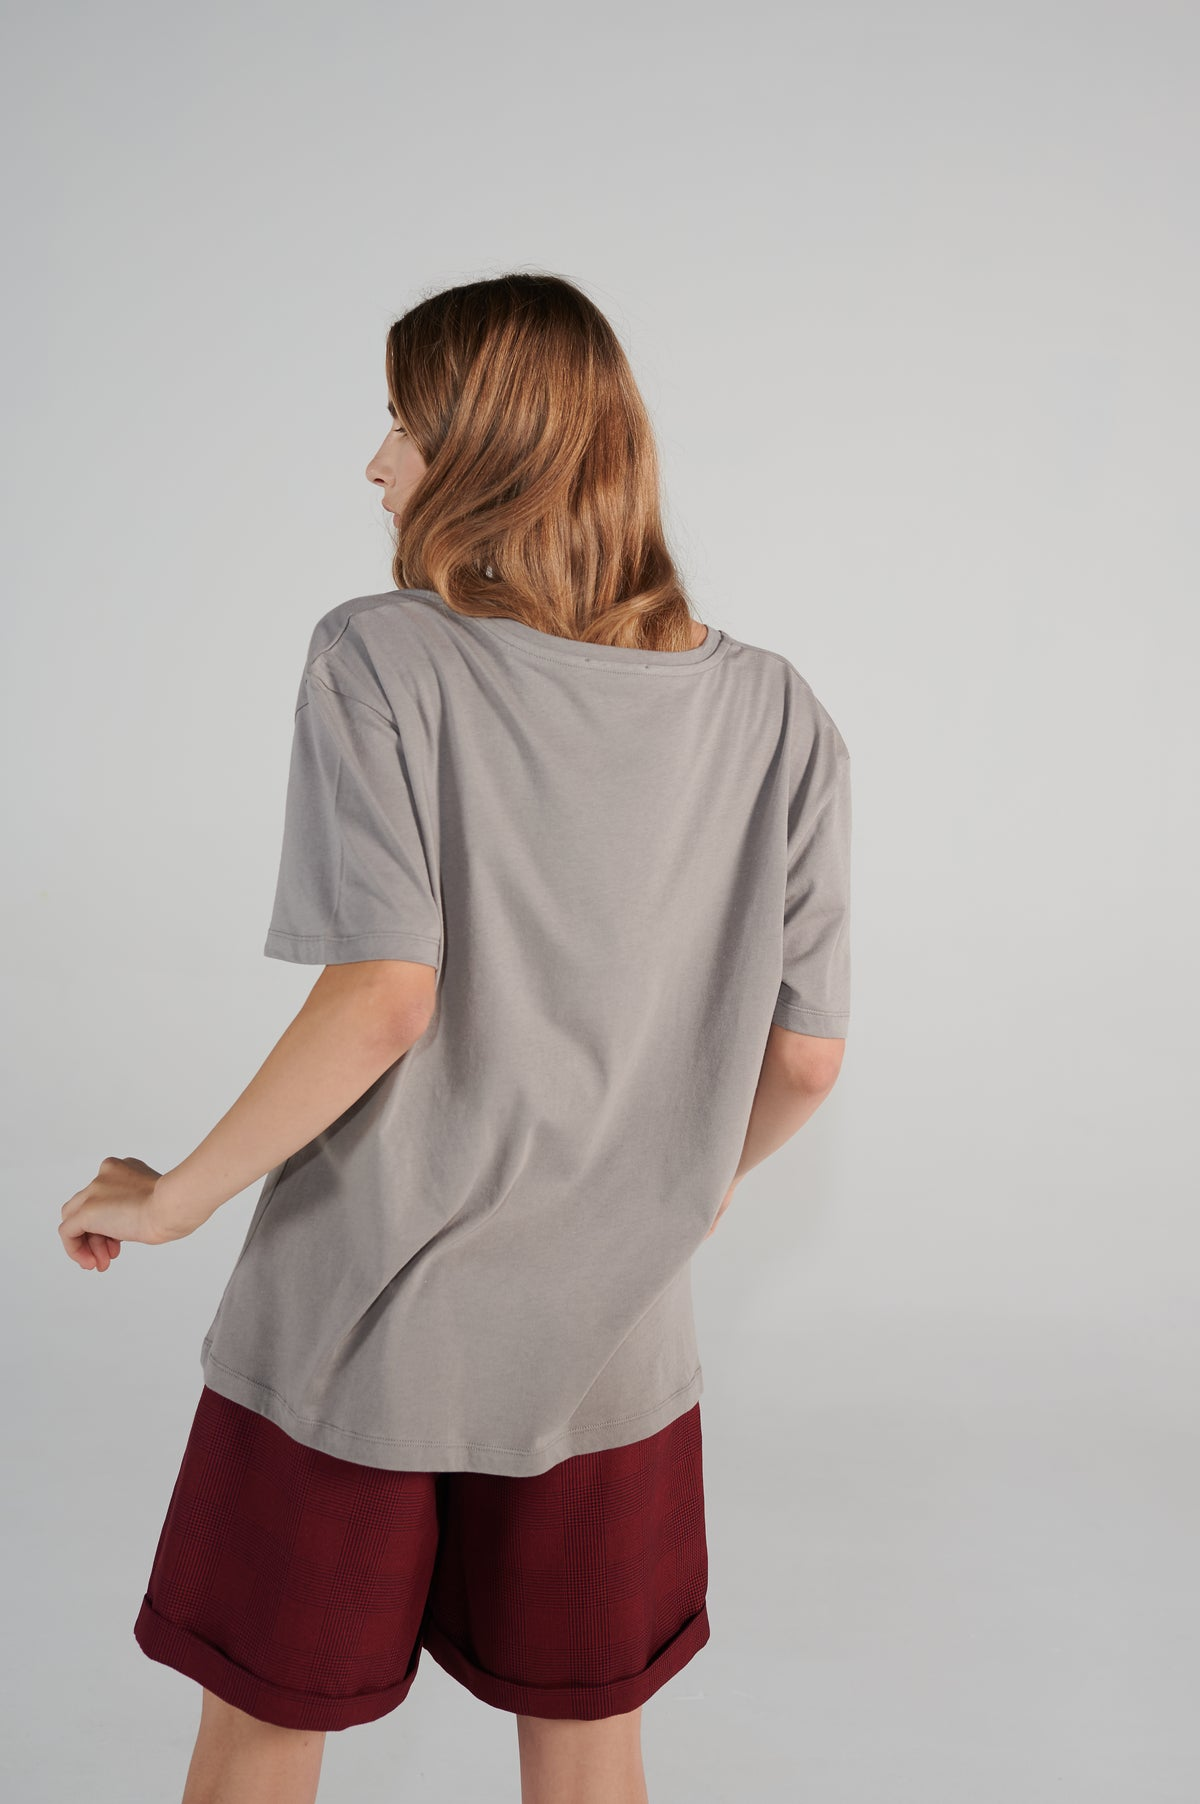 russki-oversize-fit-tshirt-grey-le-slap-organic-cotton-negovoryu-lookbook.jpg